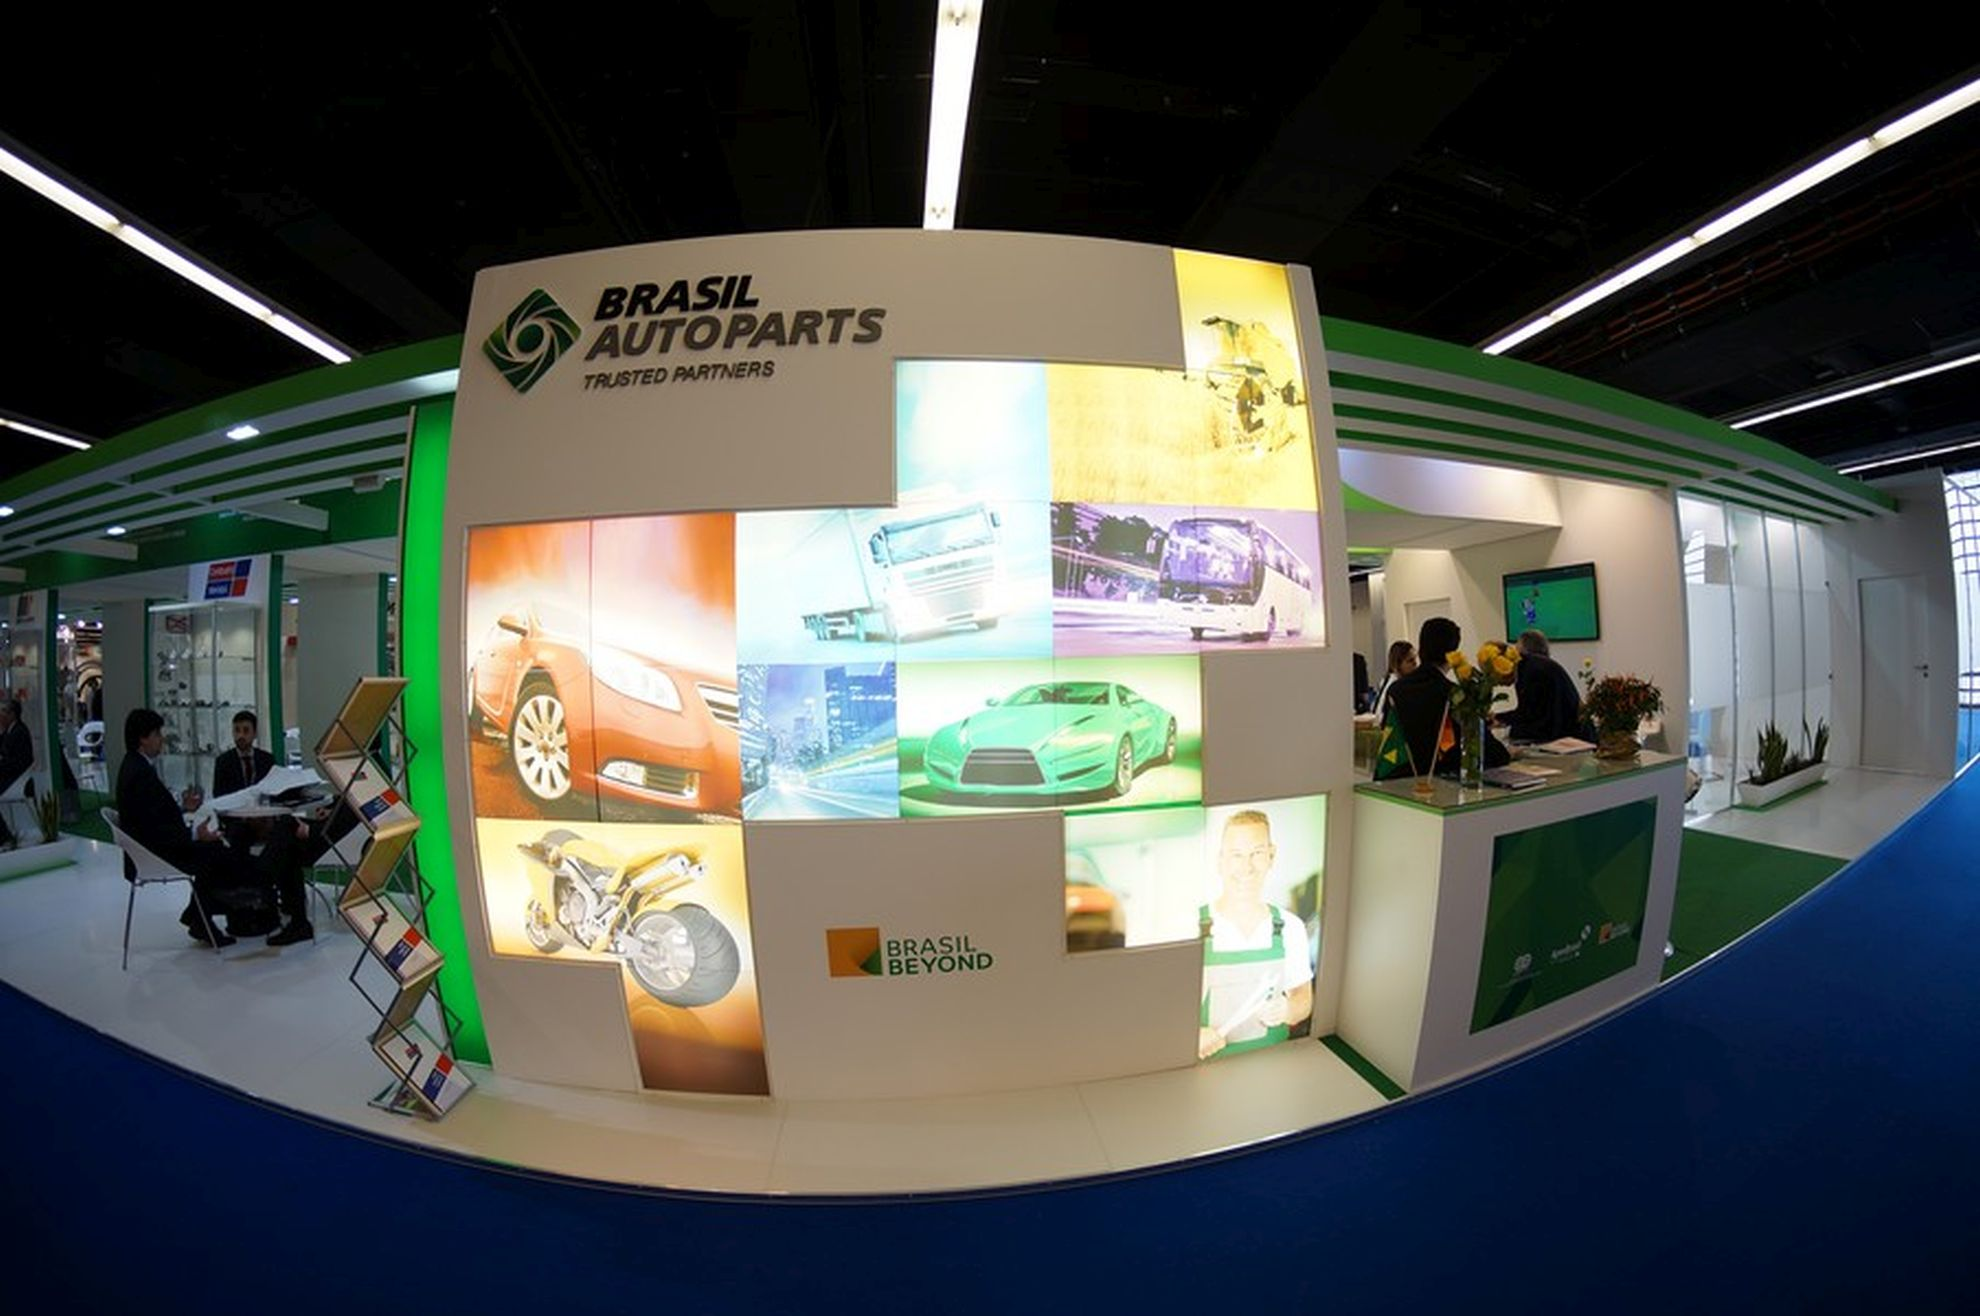 Brazilian-Industry-brings-Auto-Parts-to-Automechanika-Johannesburg-2015